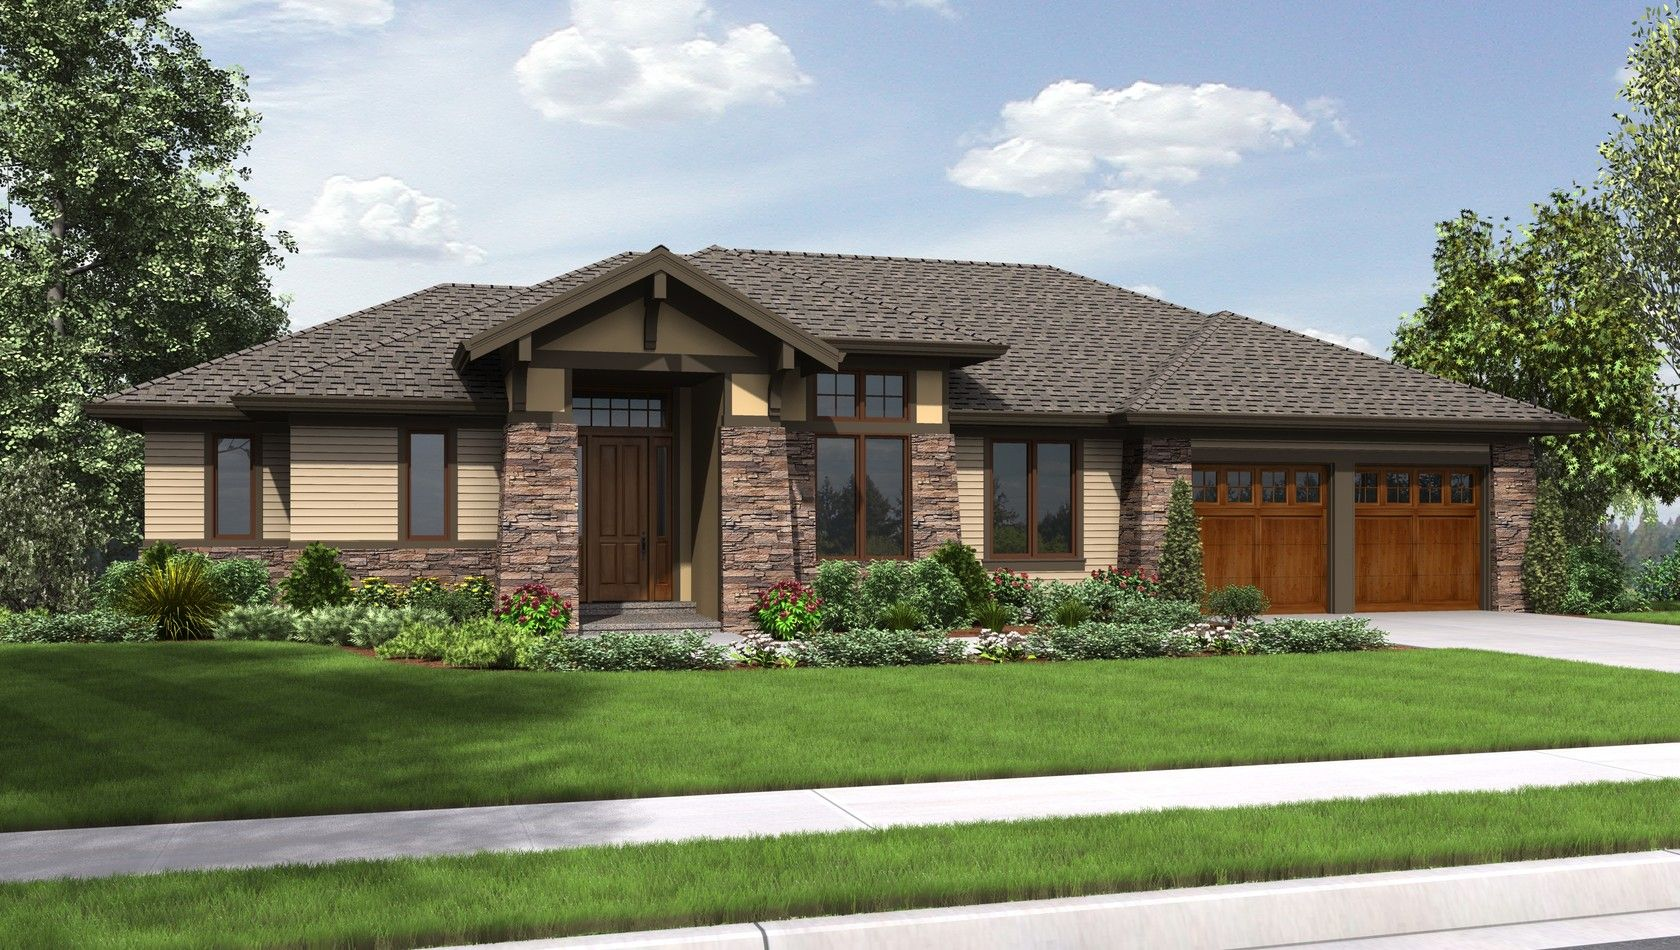 Perfect 1848 sq ft house plans under 2 000 sq ft Ranch craftsman style house plans